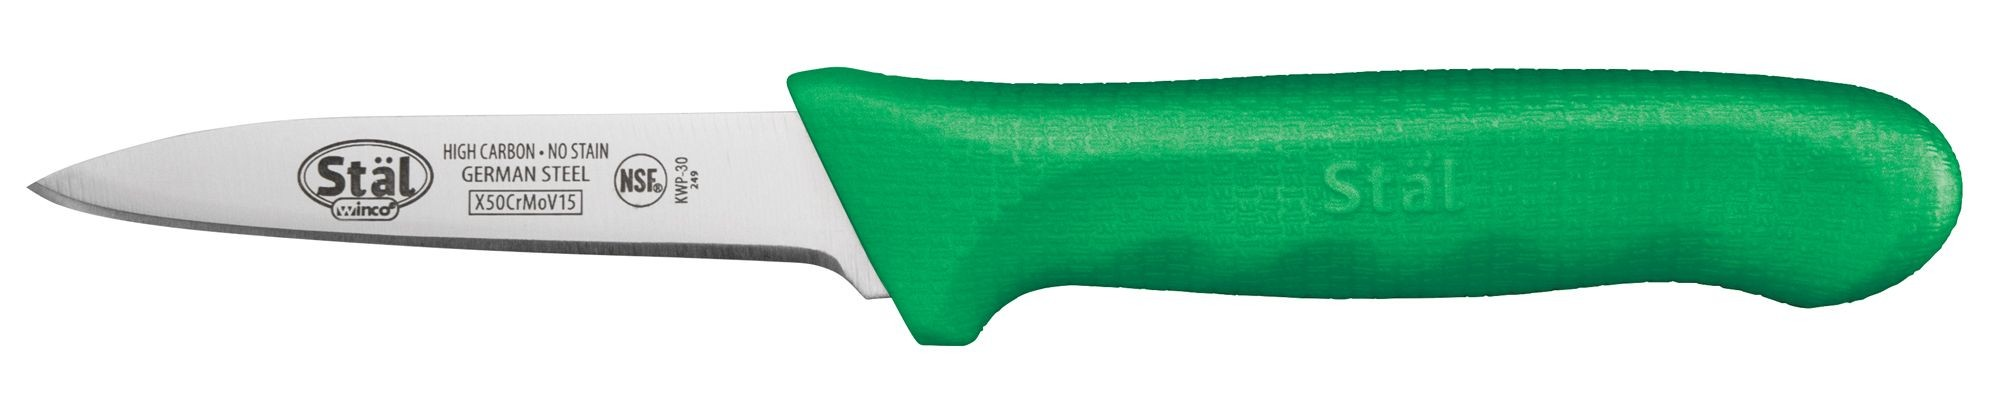 """Winco KWP-30G 3-1/4"""" Paring Knife with Green Handle - 2 pieces"""